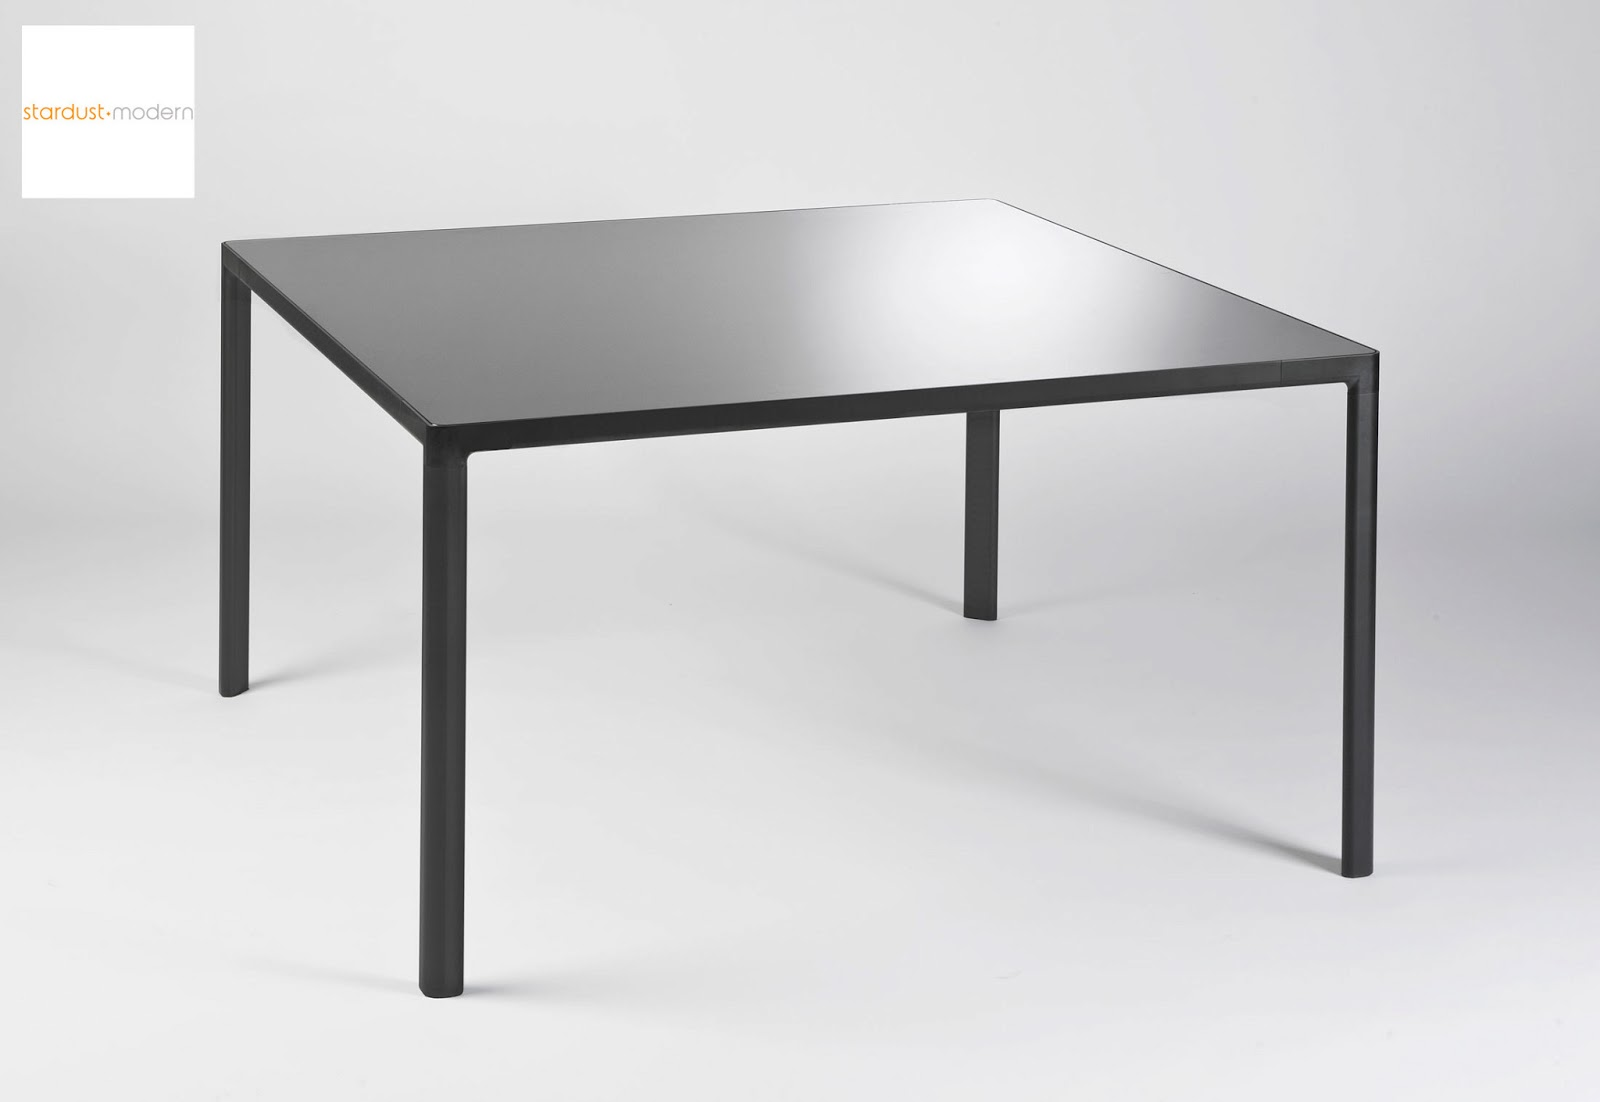 square dining table contemporary photo - 6